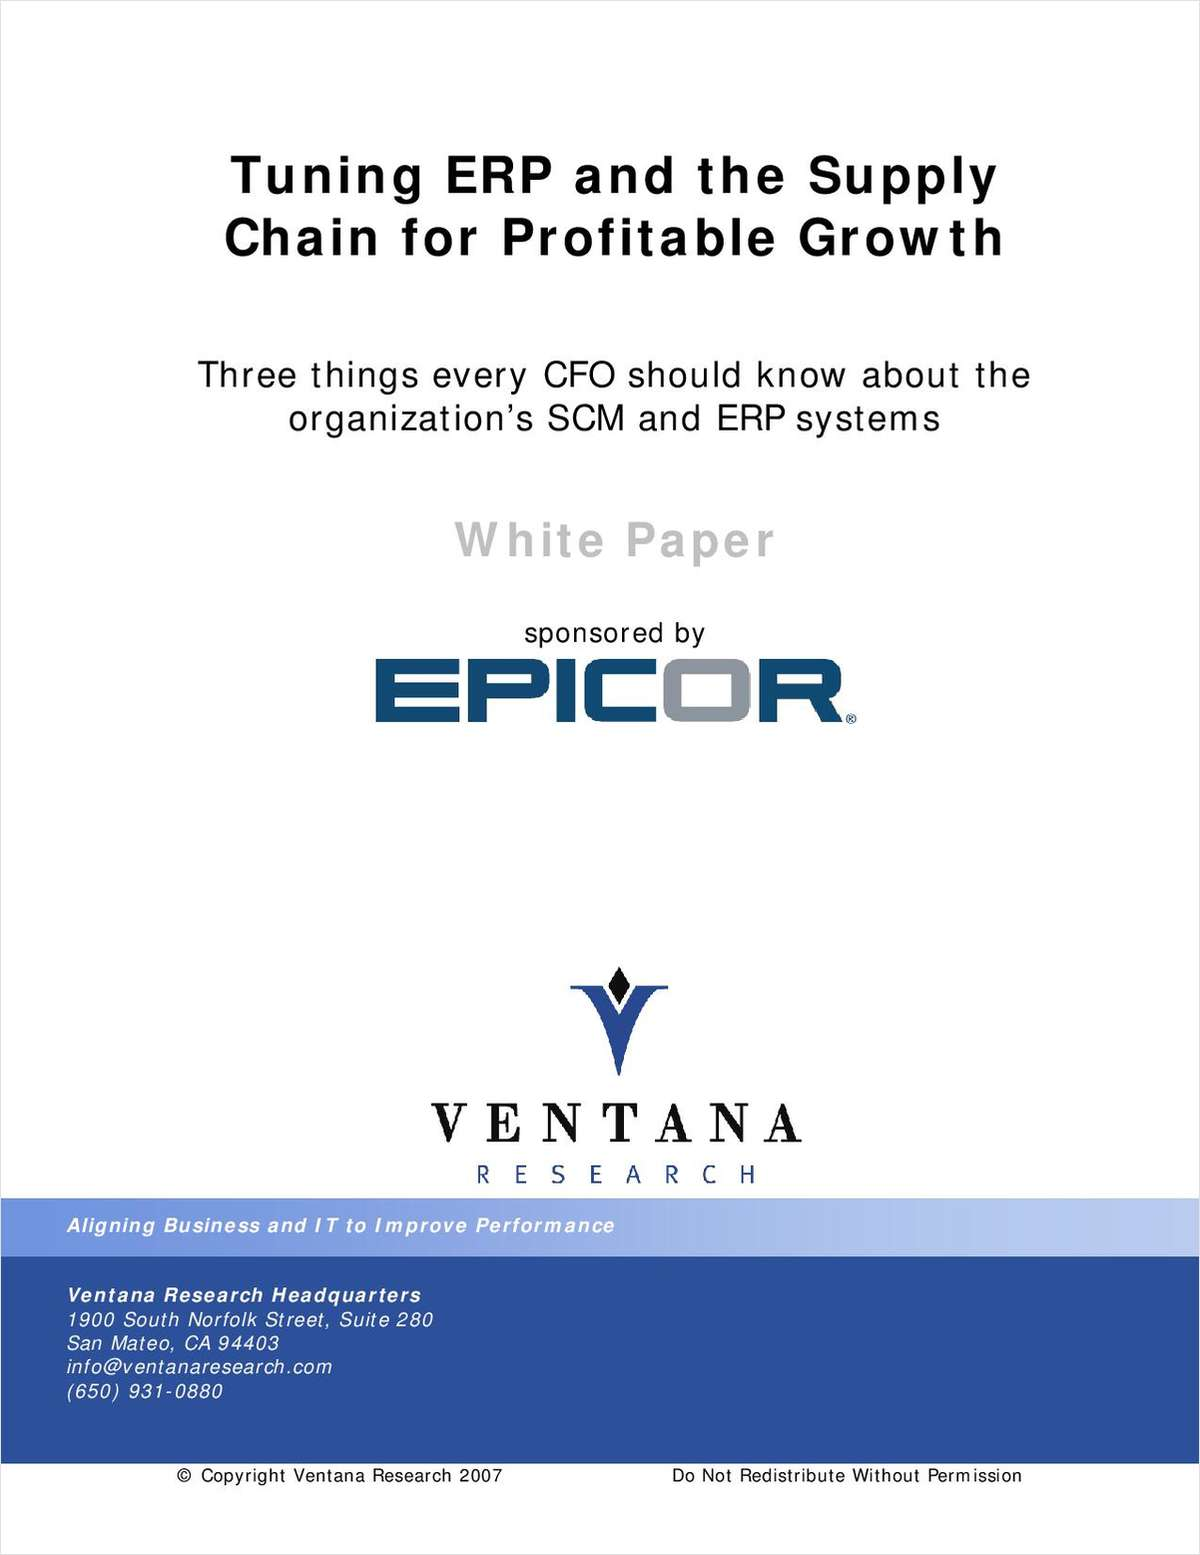 Tuning ERP and the Supply Chain for Profitable Growth